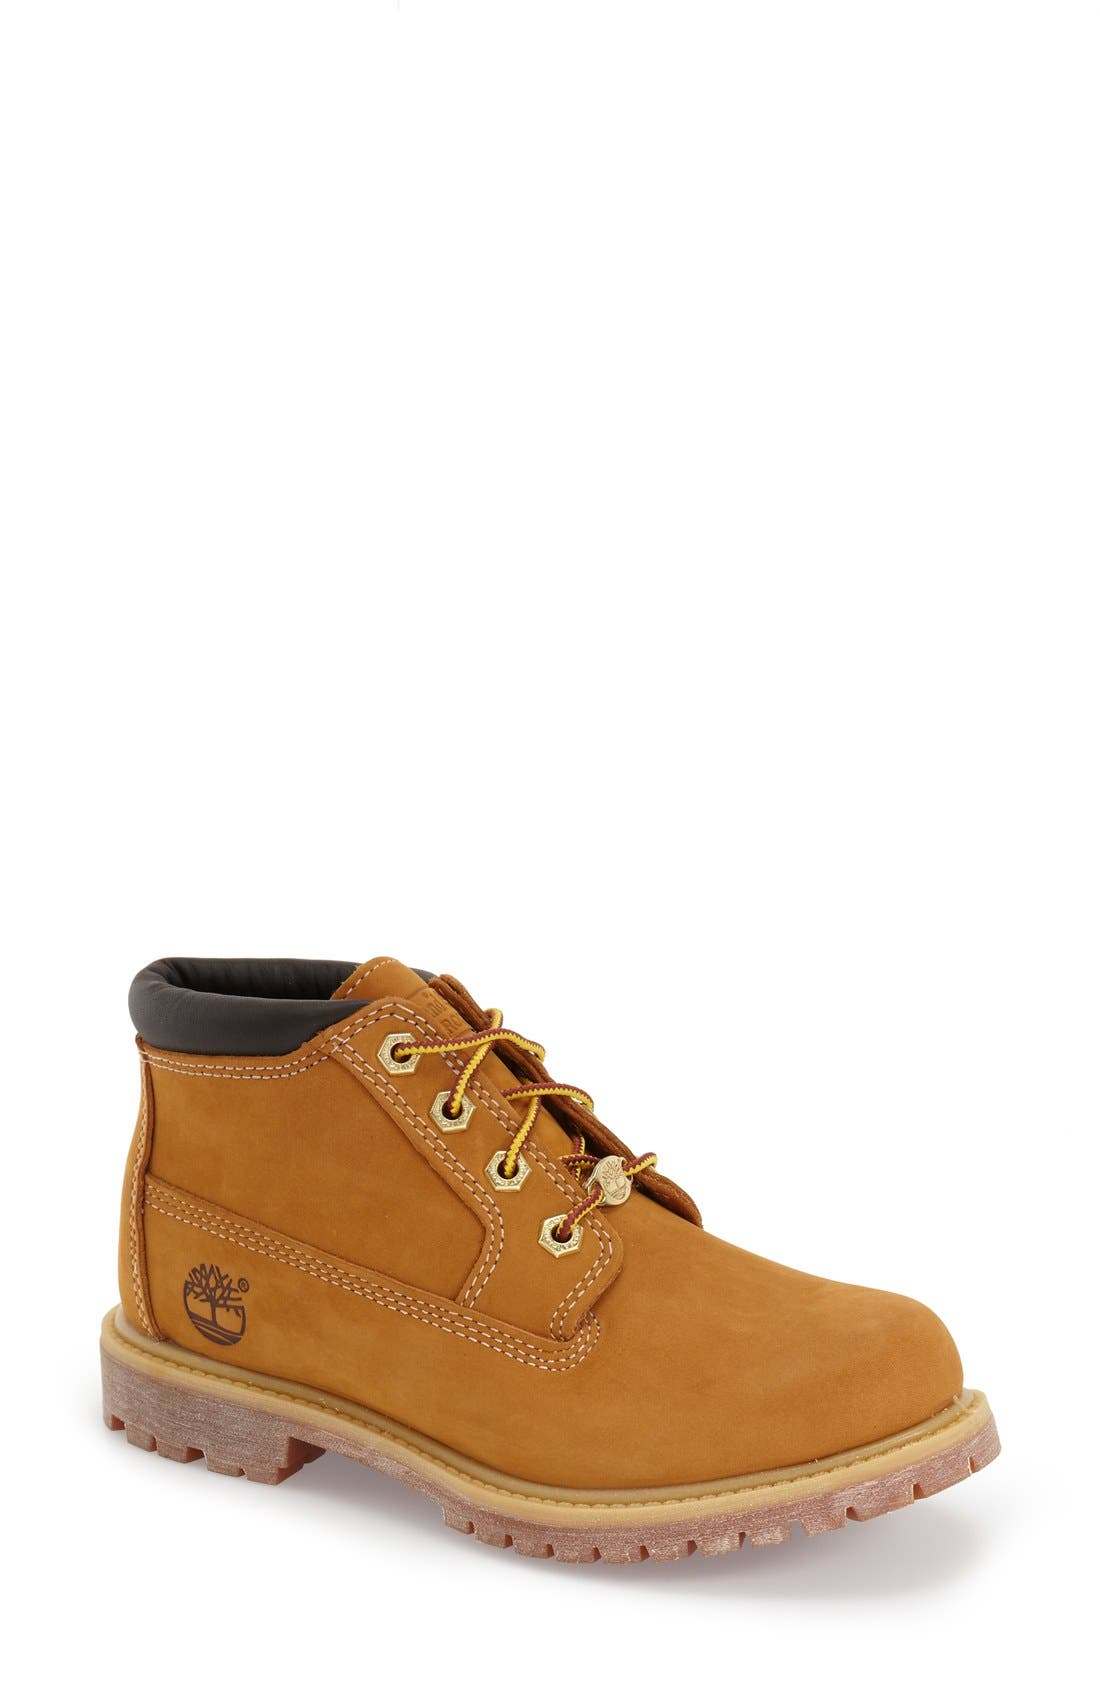 timberland nellie boots women